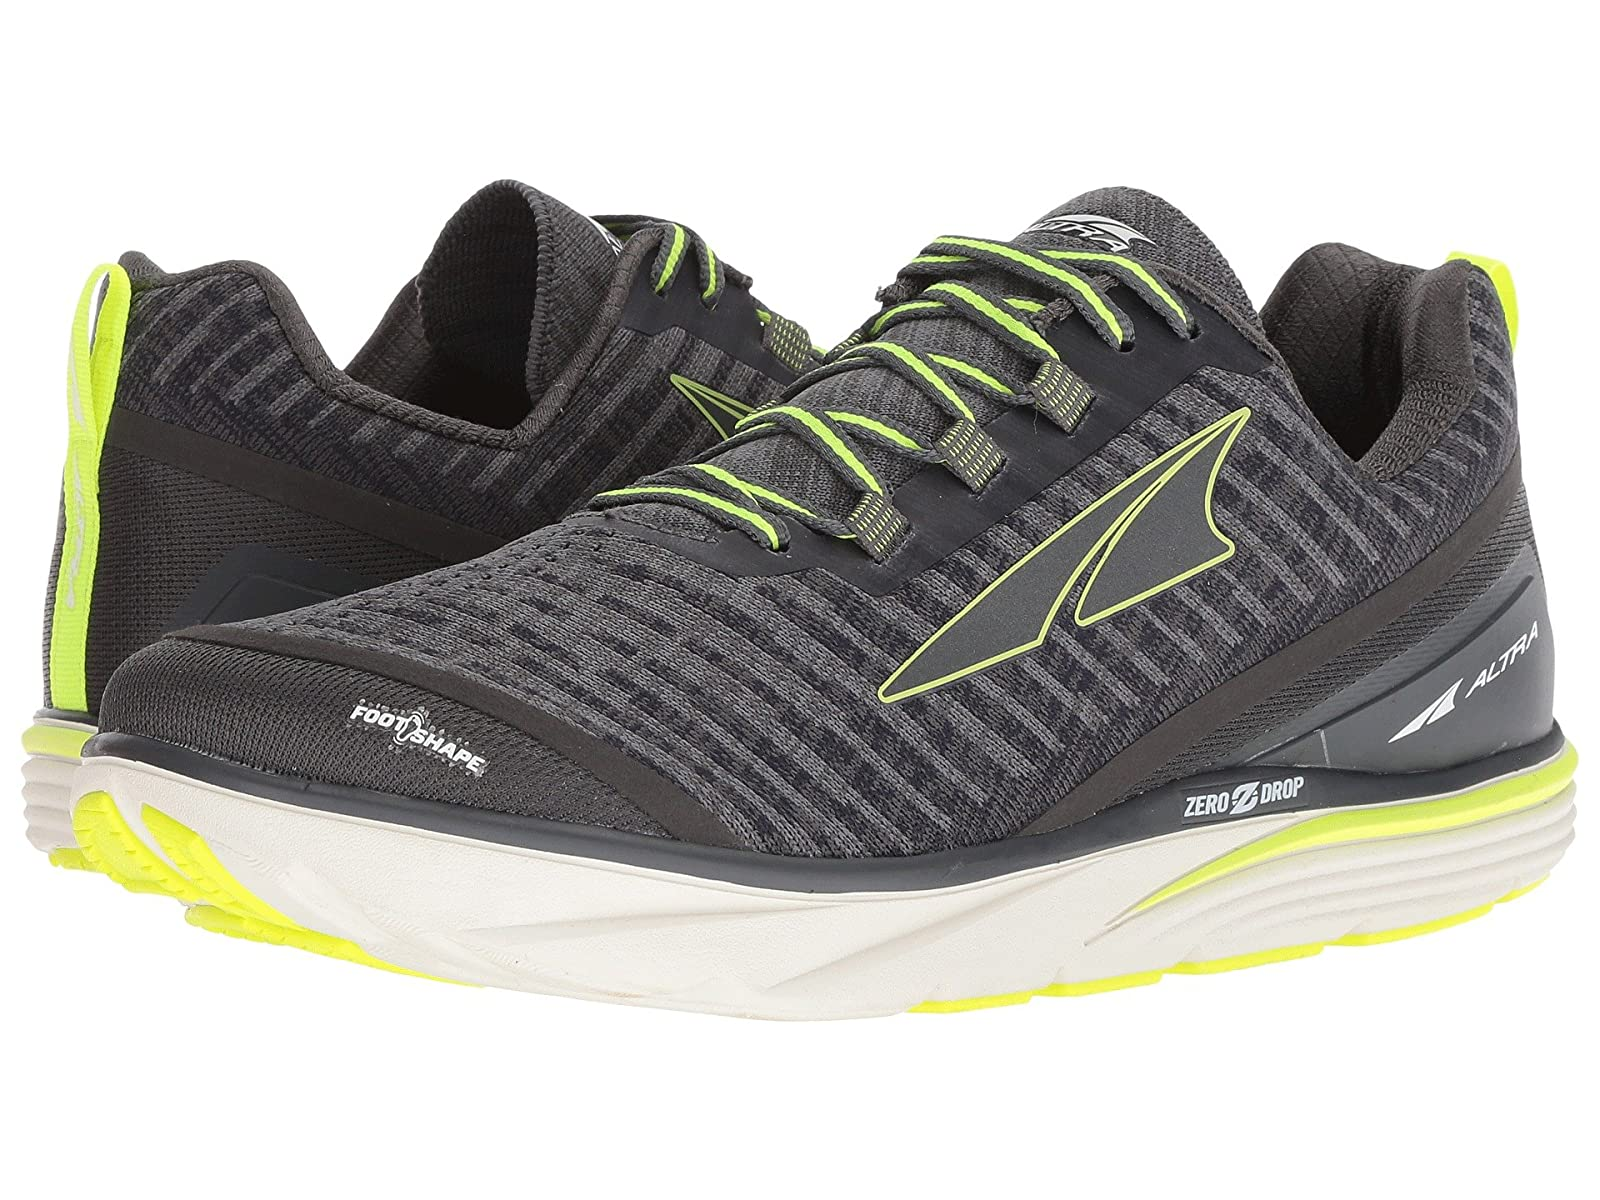 Altra Footwear Torin Knit 3.5Atmospheric grades have affordable shoes